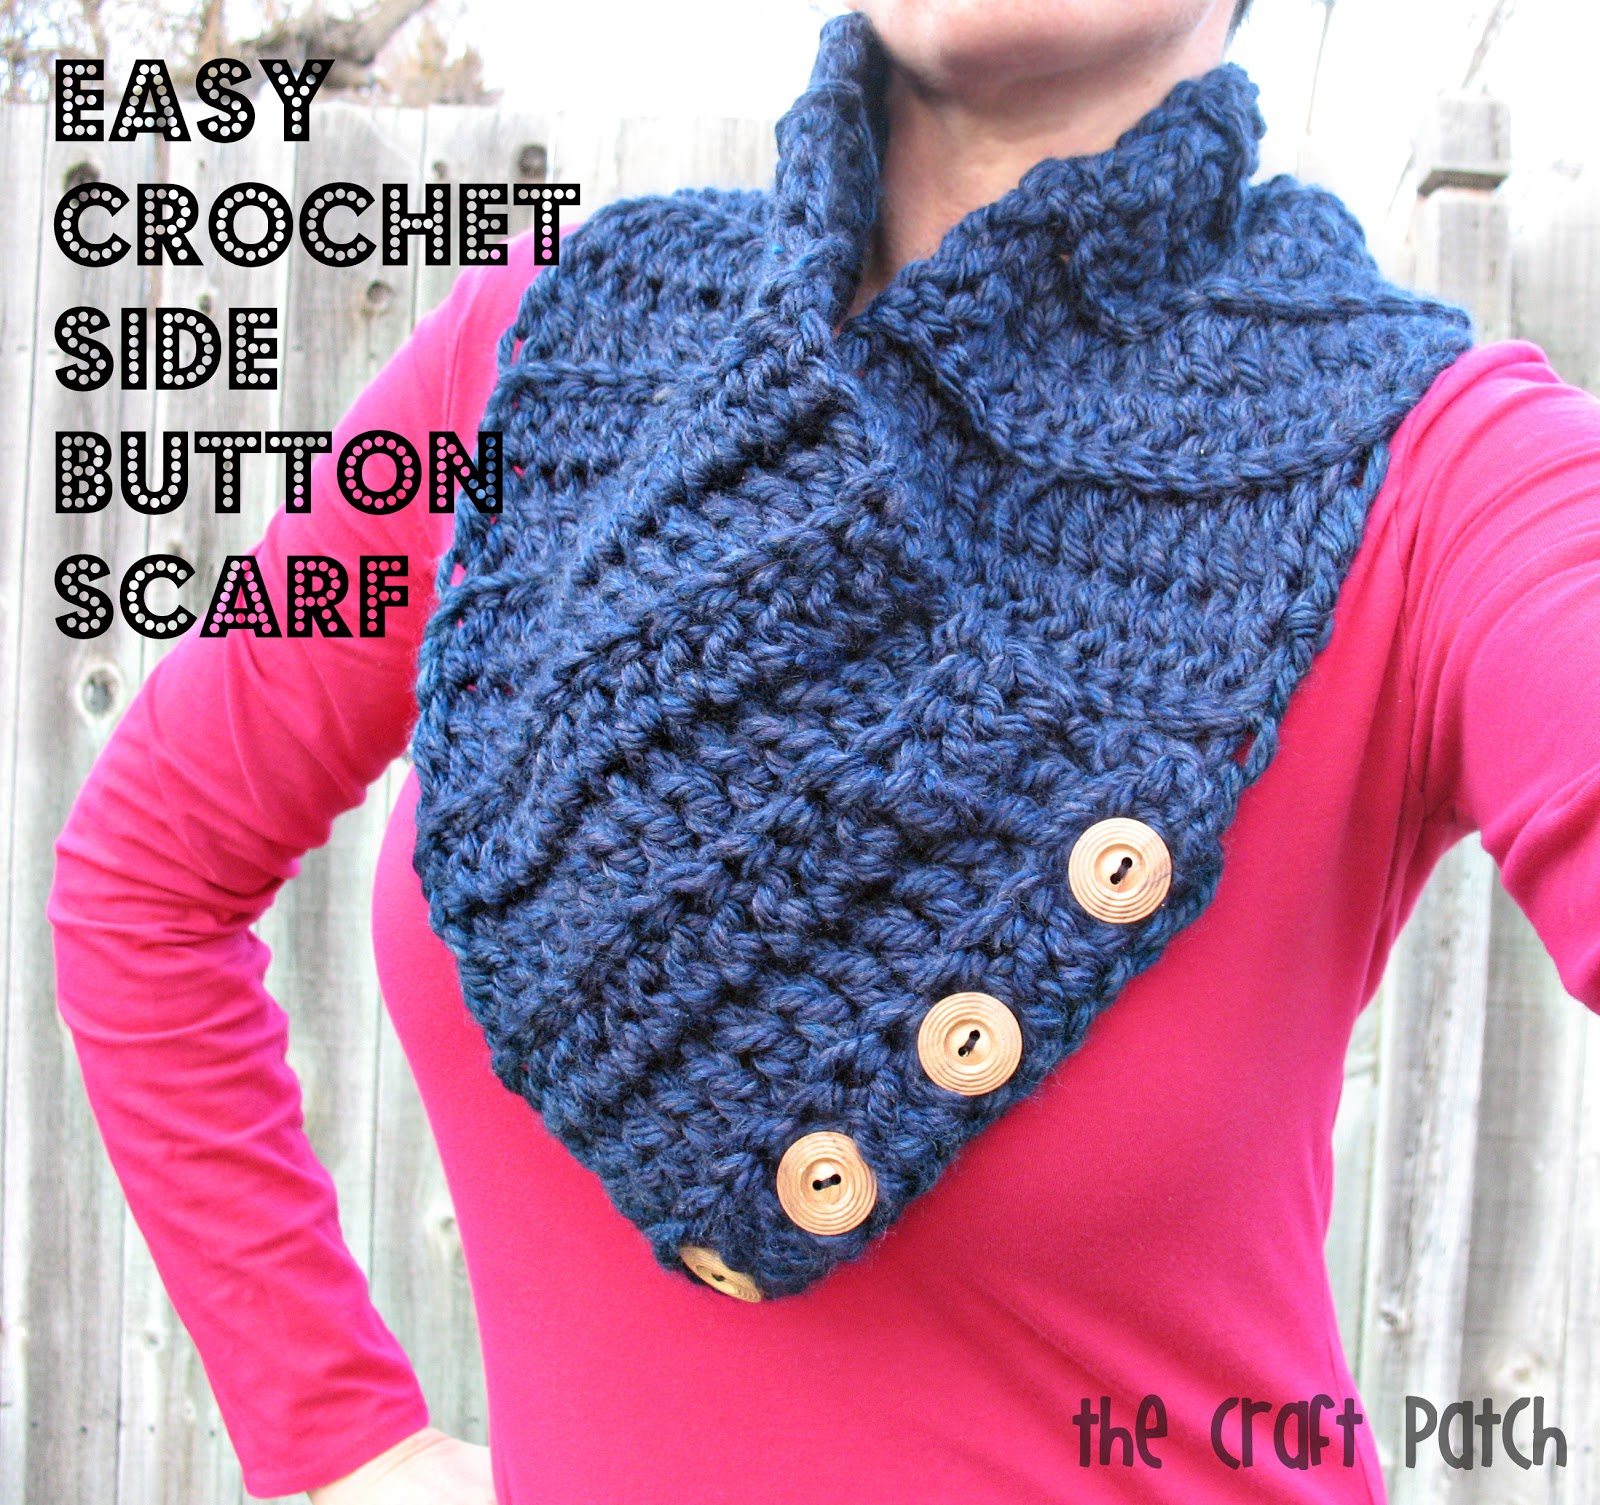 The craft patch easy crochet side button scarf easy crochet side button scarf bankloansurffo Images